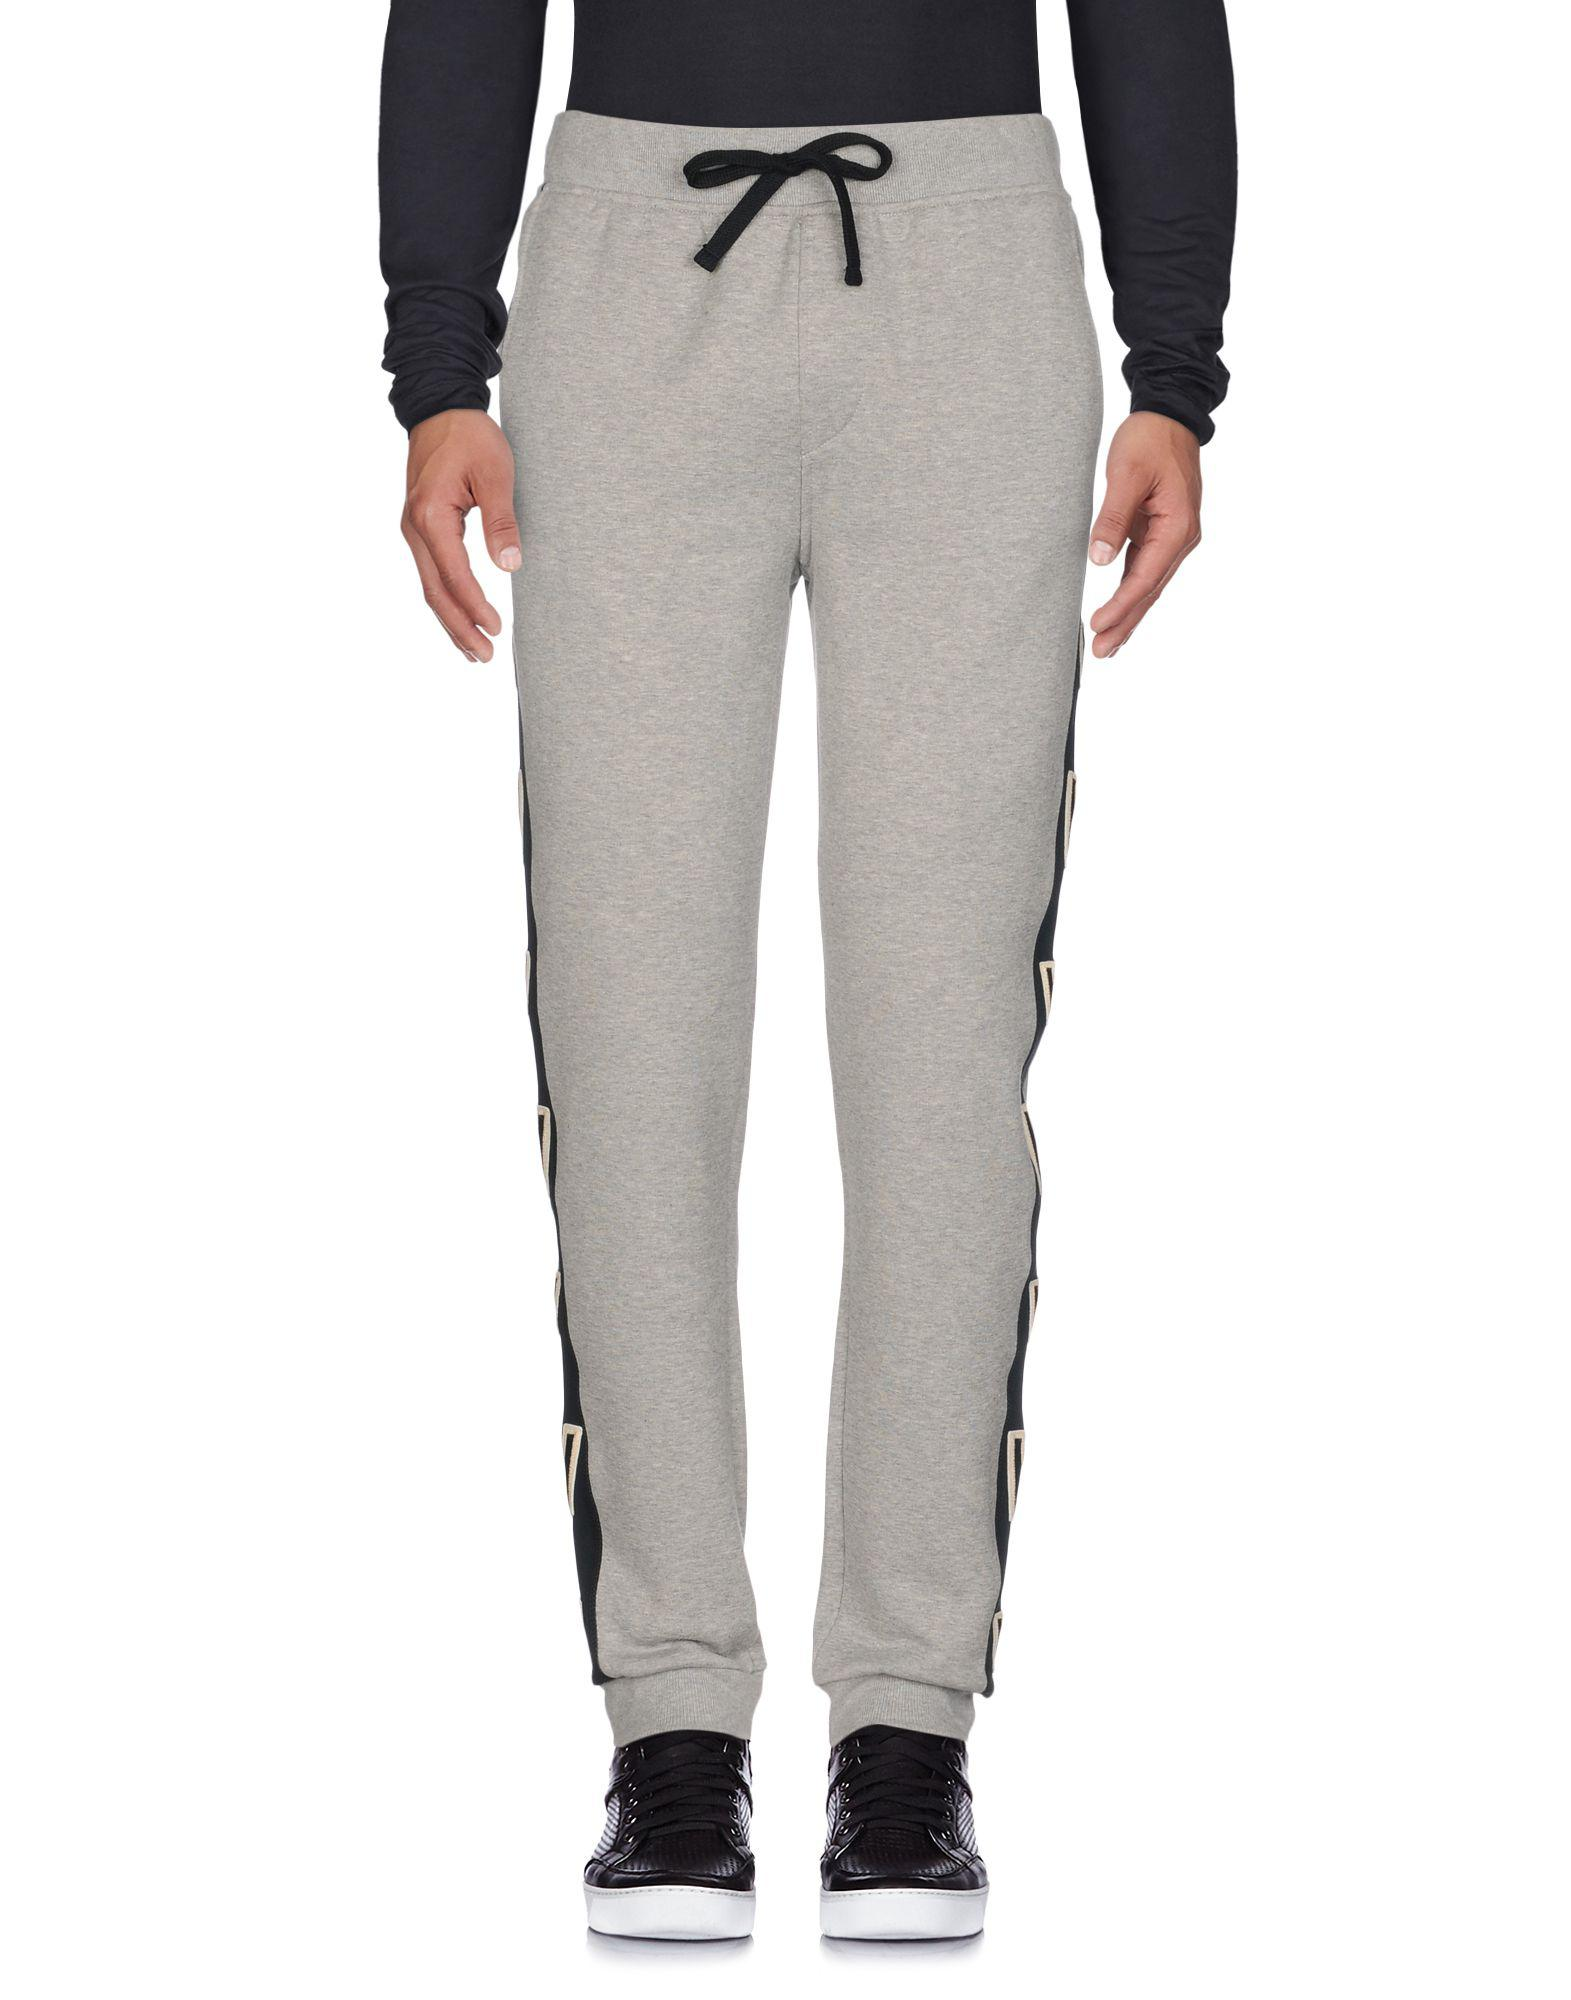 TROUSERS - Casual trousers Virtus Palestre Find Great For Sale 100% Guaranteed Cheap Price Cheap Sale Browse Low Cost Sale Online Outlet Cheap Authentic LhZEERO